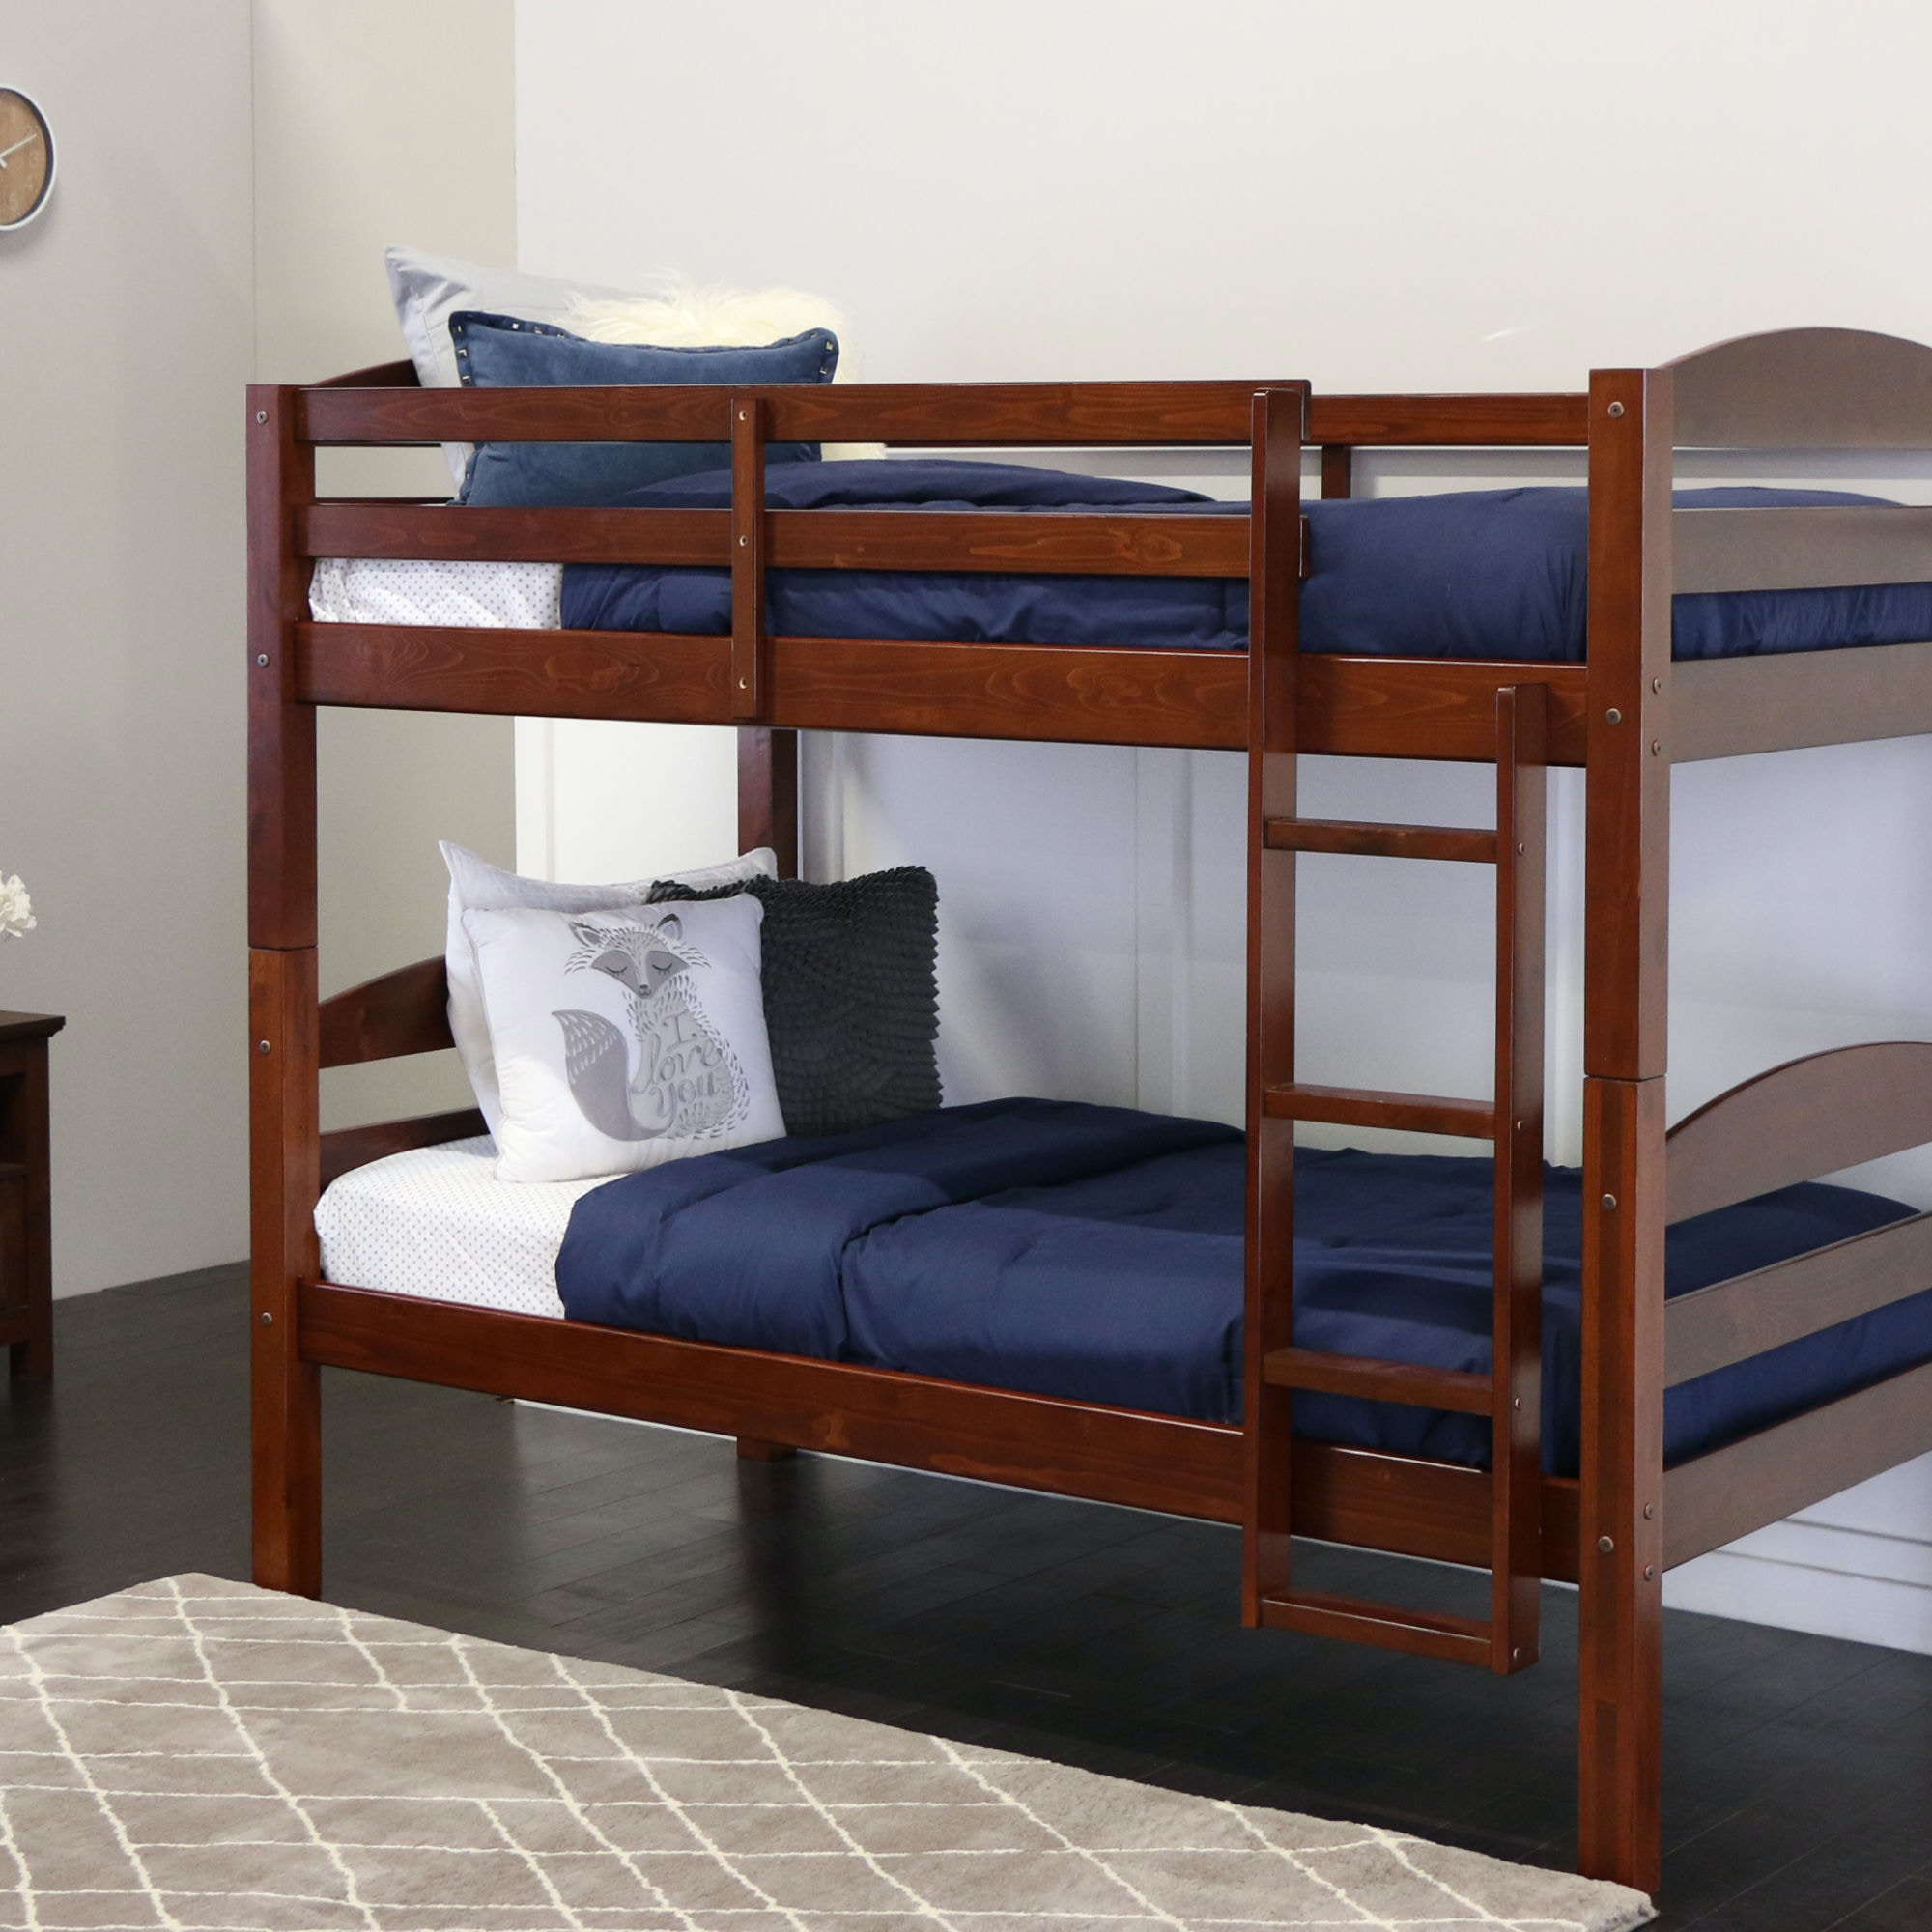 Bunk Beds Furniture Walter E Smithe Furniture And Design 10